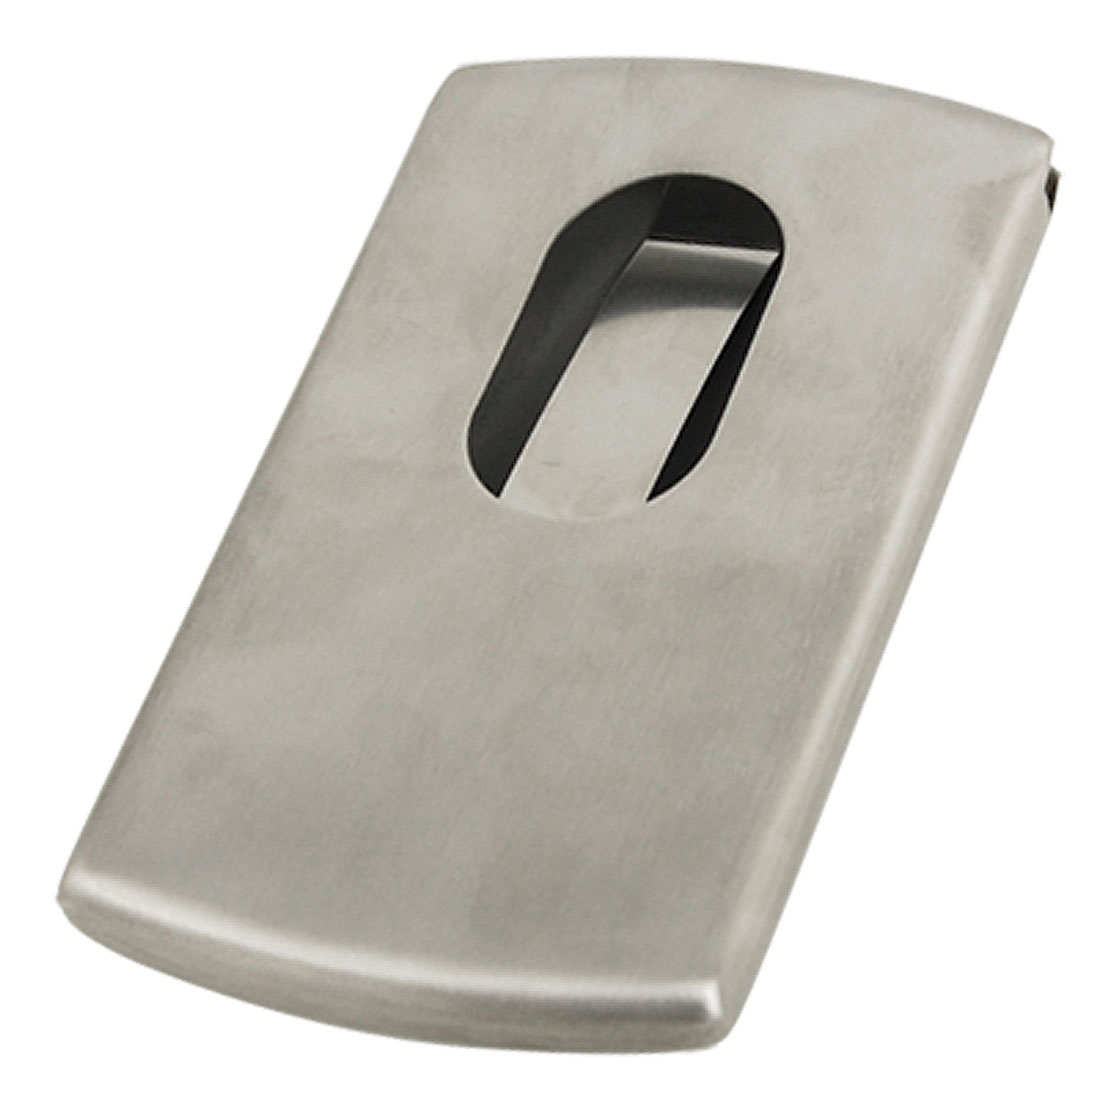 Pocket Silver Tone Metal Case Name Business Card Holder